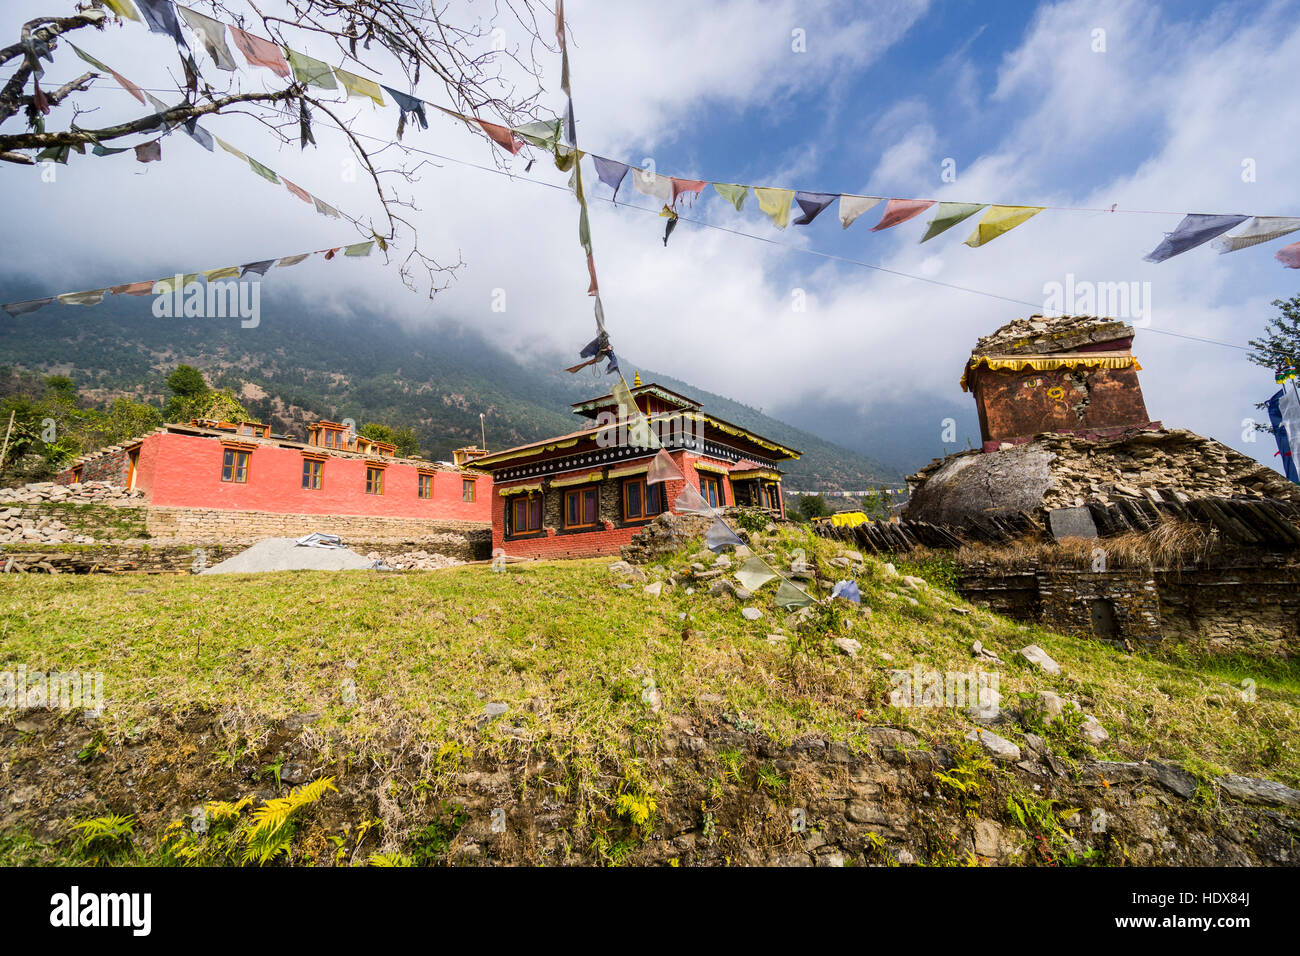 The monastery Bhandar Gompa, which was heavily damaged during the 2015 earthquake, is getting rebuild - Stock Image